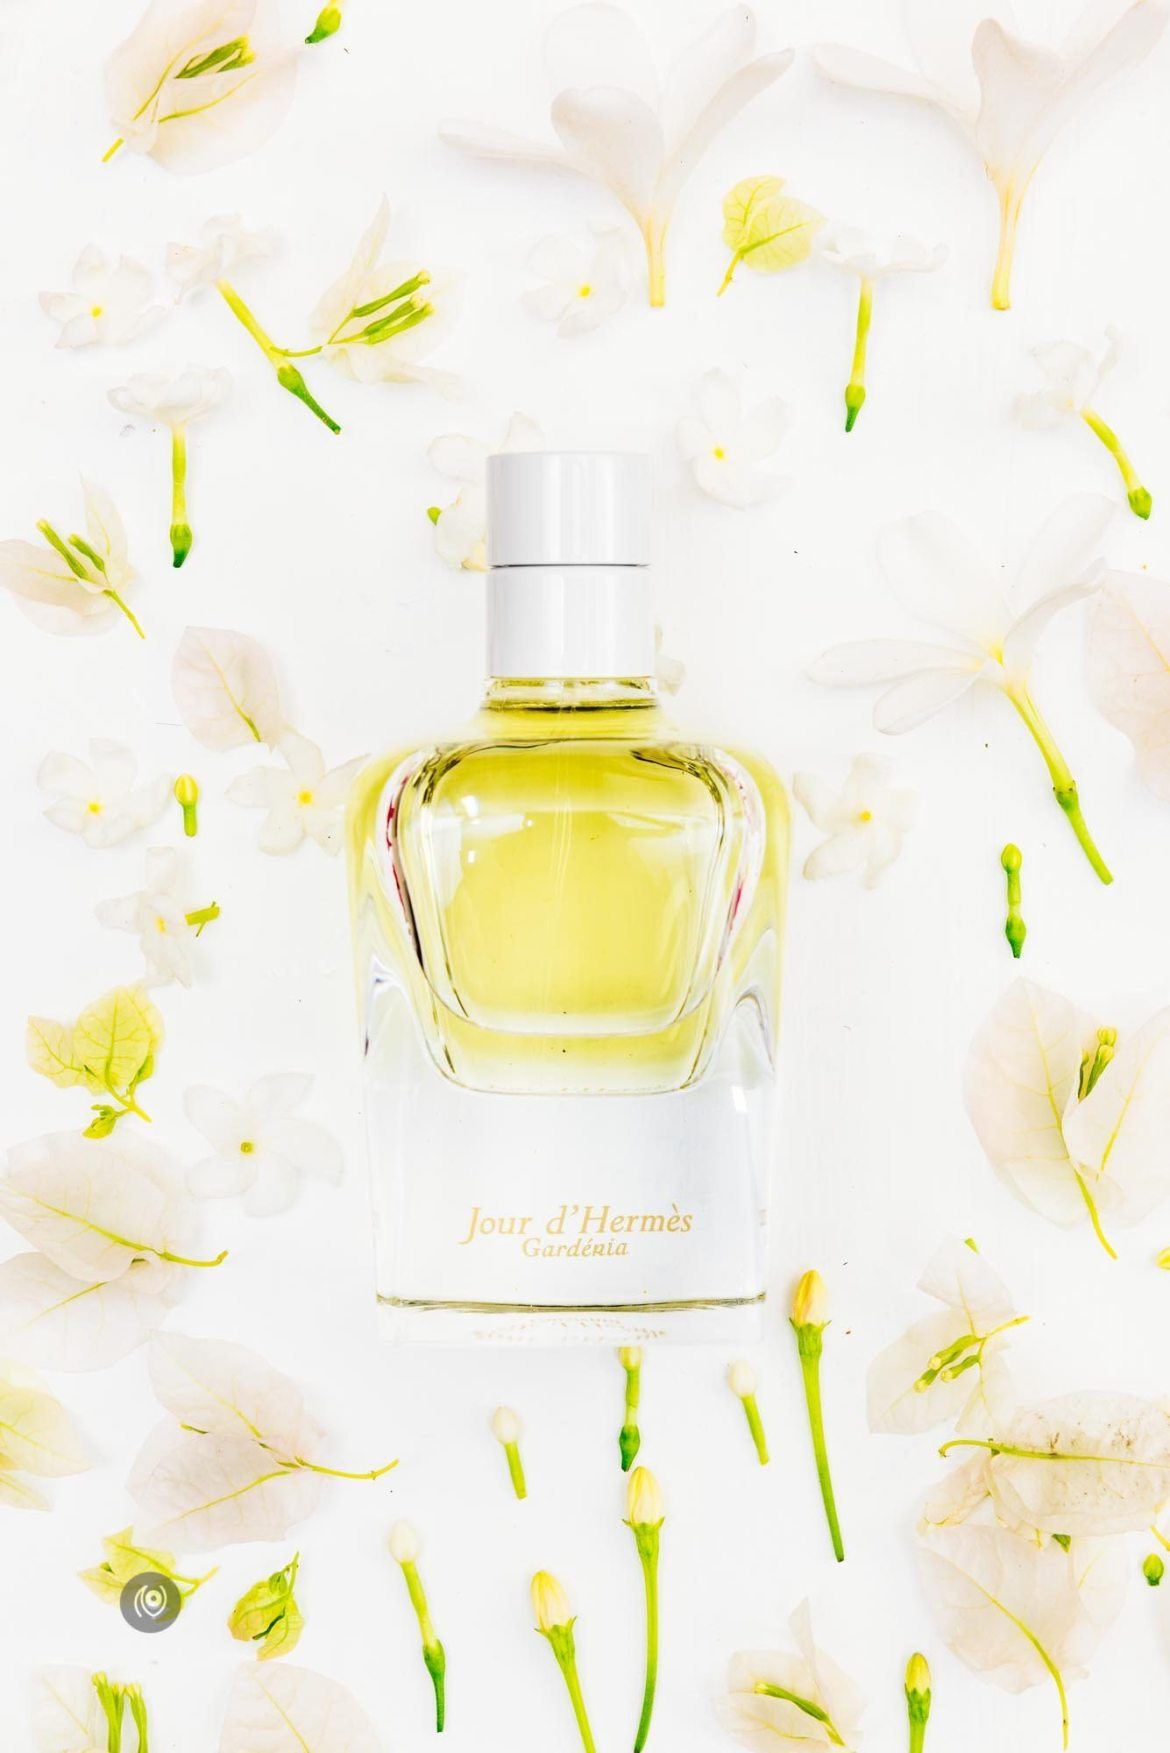 FragranceOfTheMonth-Naina.co-Jour-Hermes-Gardenia-EyesForLuxury-05